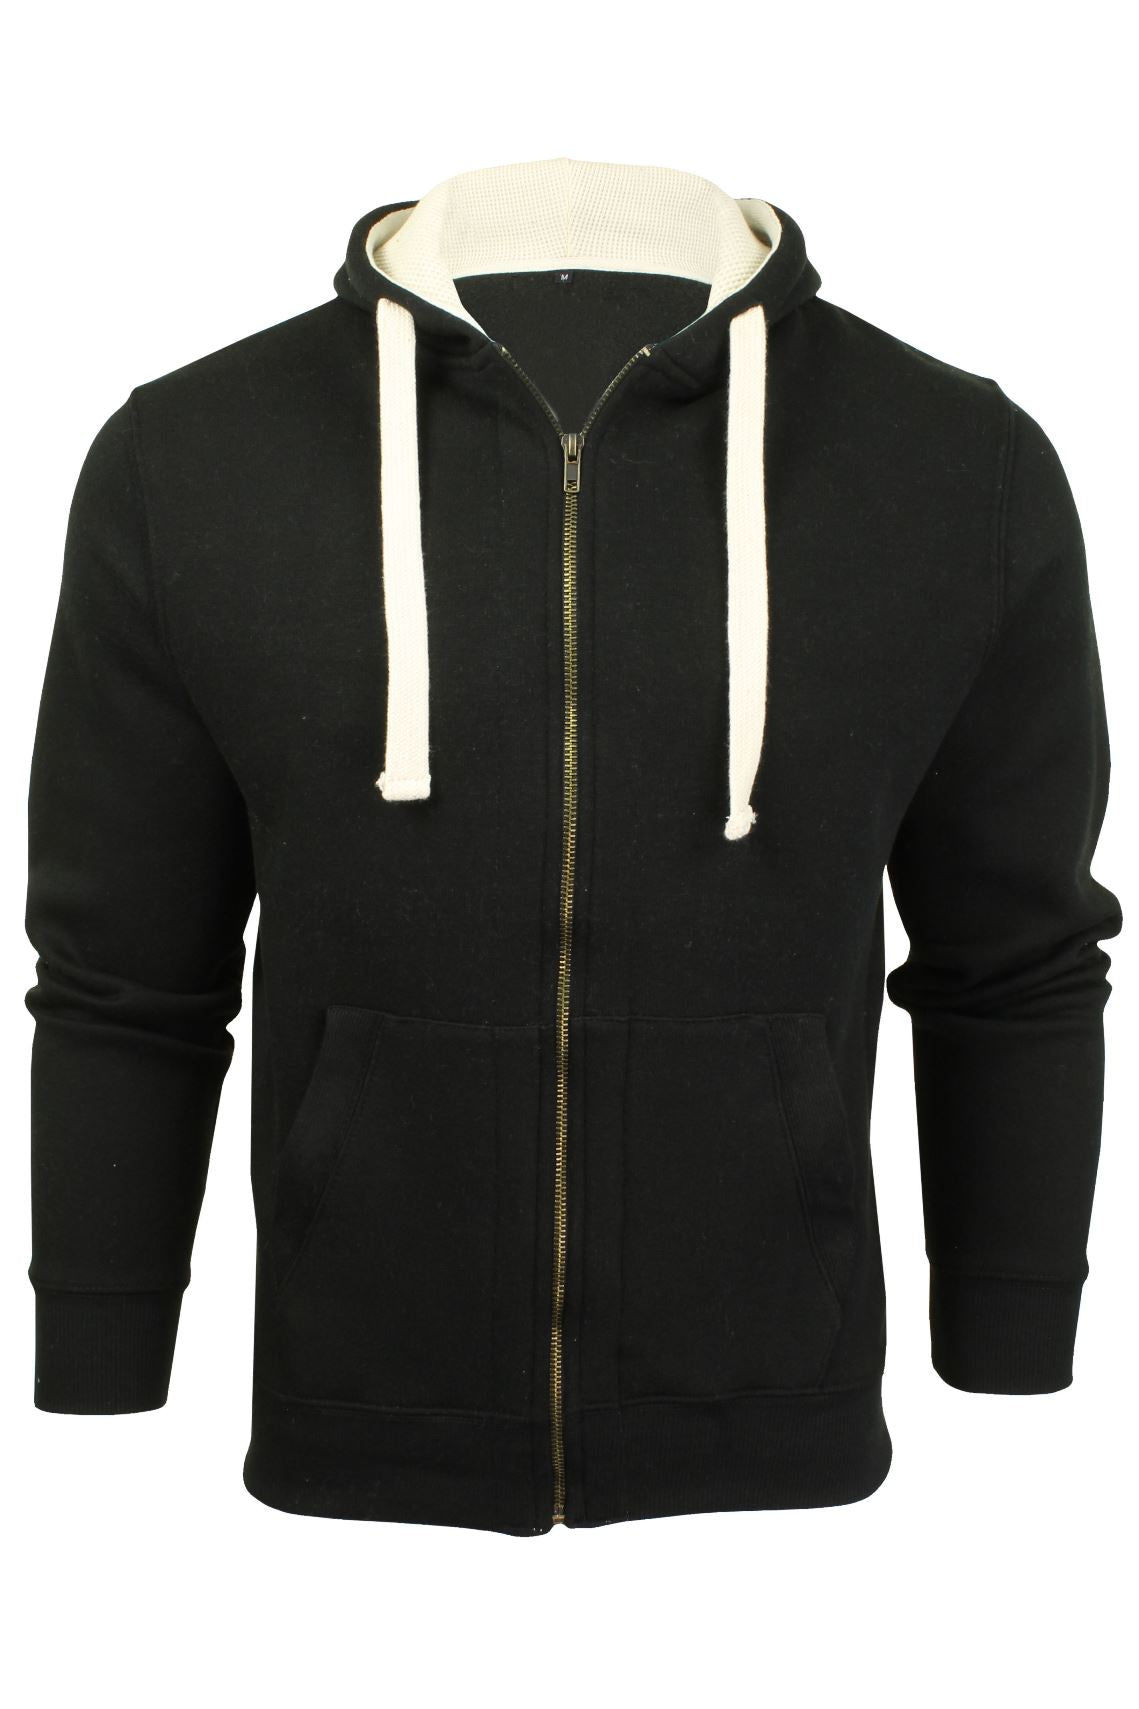 Mens Zip Through Hoodie Sweatshirt by Xact Fleece Back-Main Image